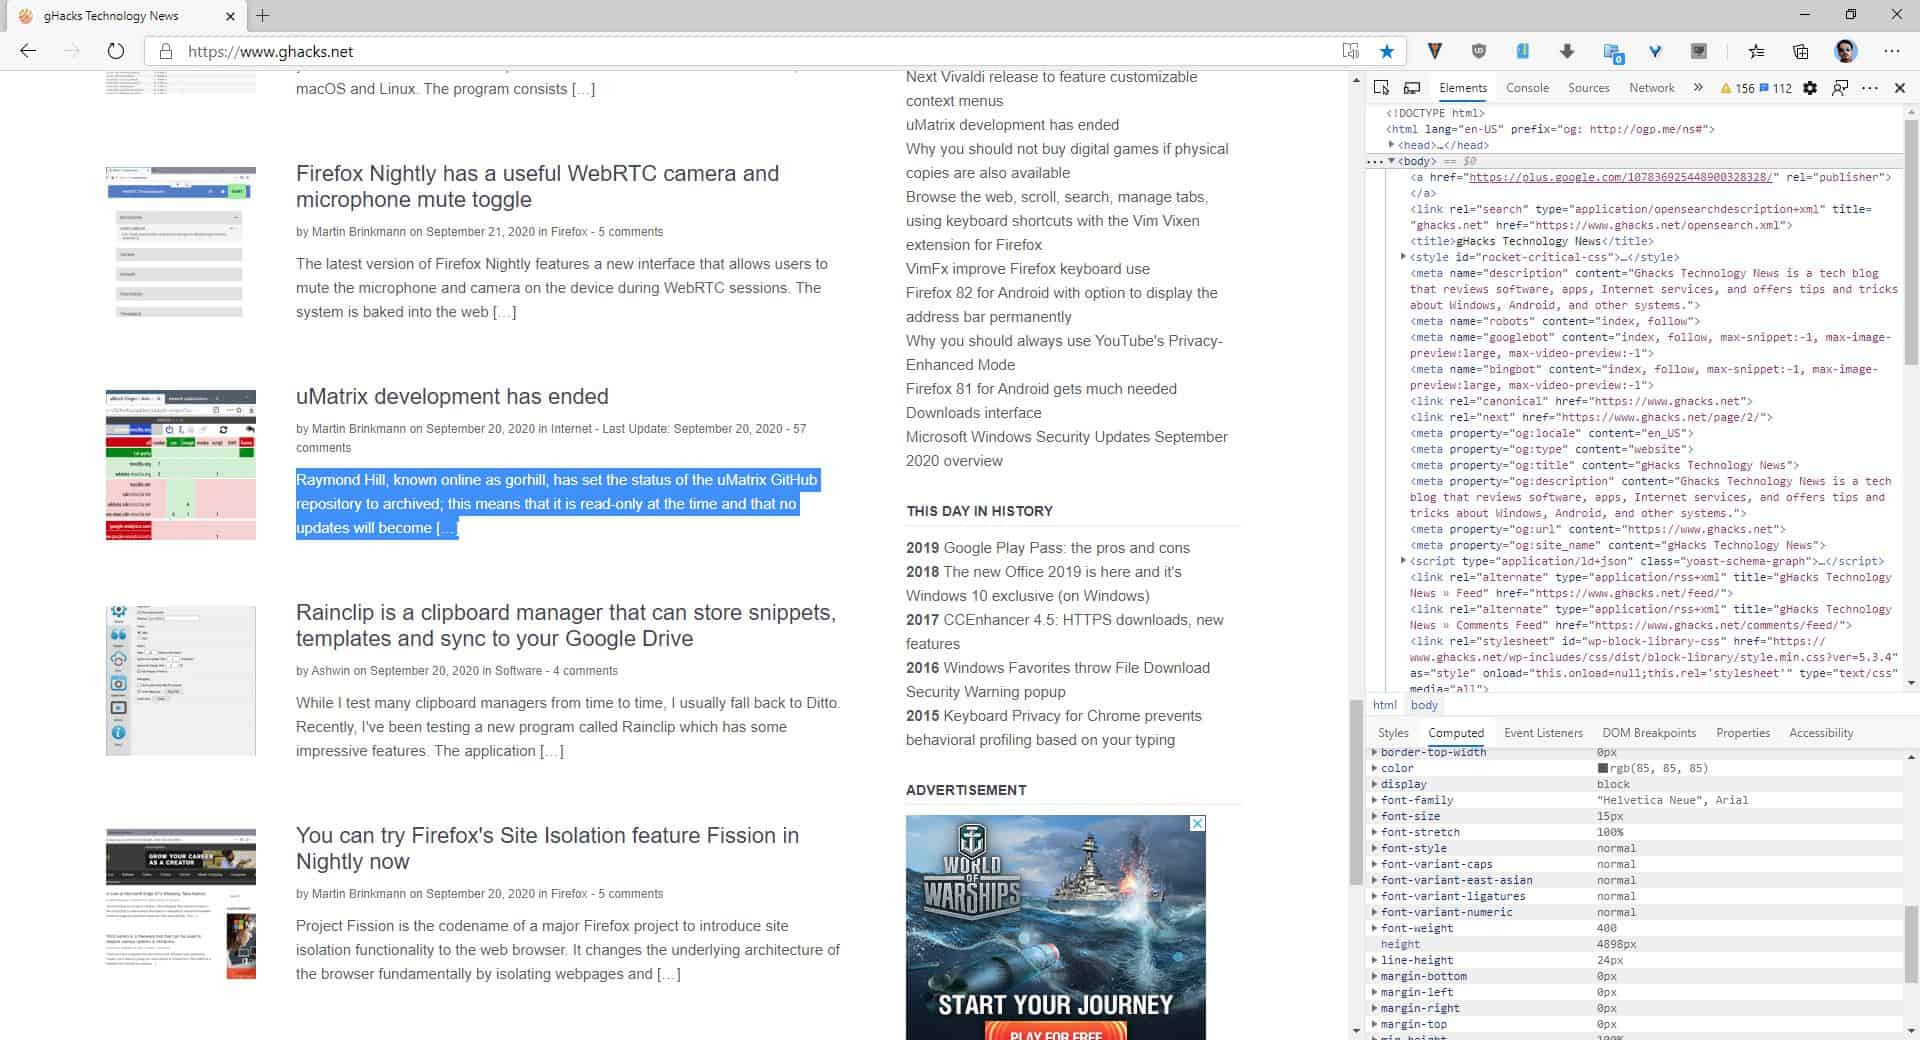 How to identify fonts on any webpage using Chrome developer tools